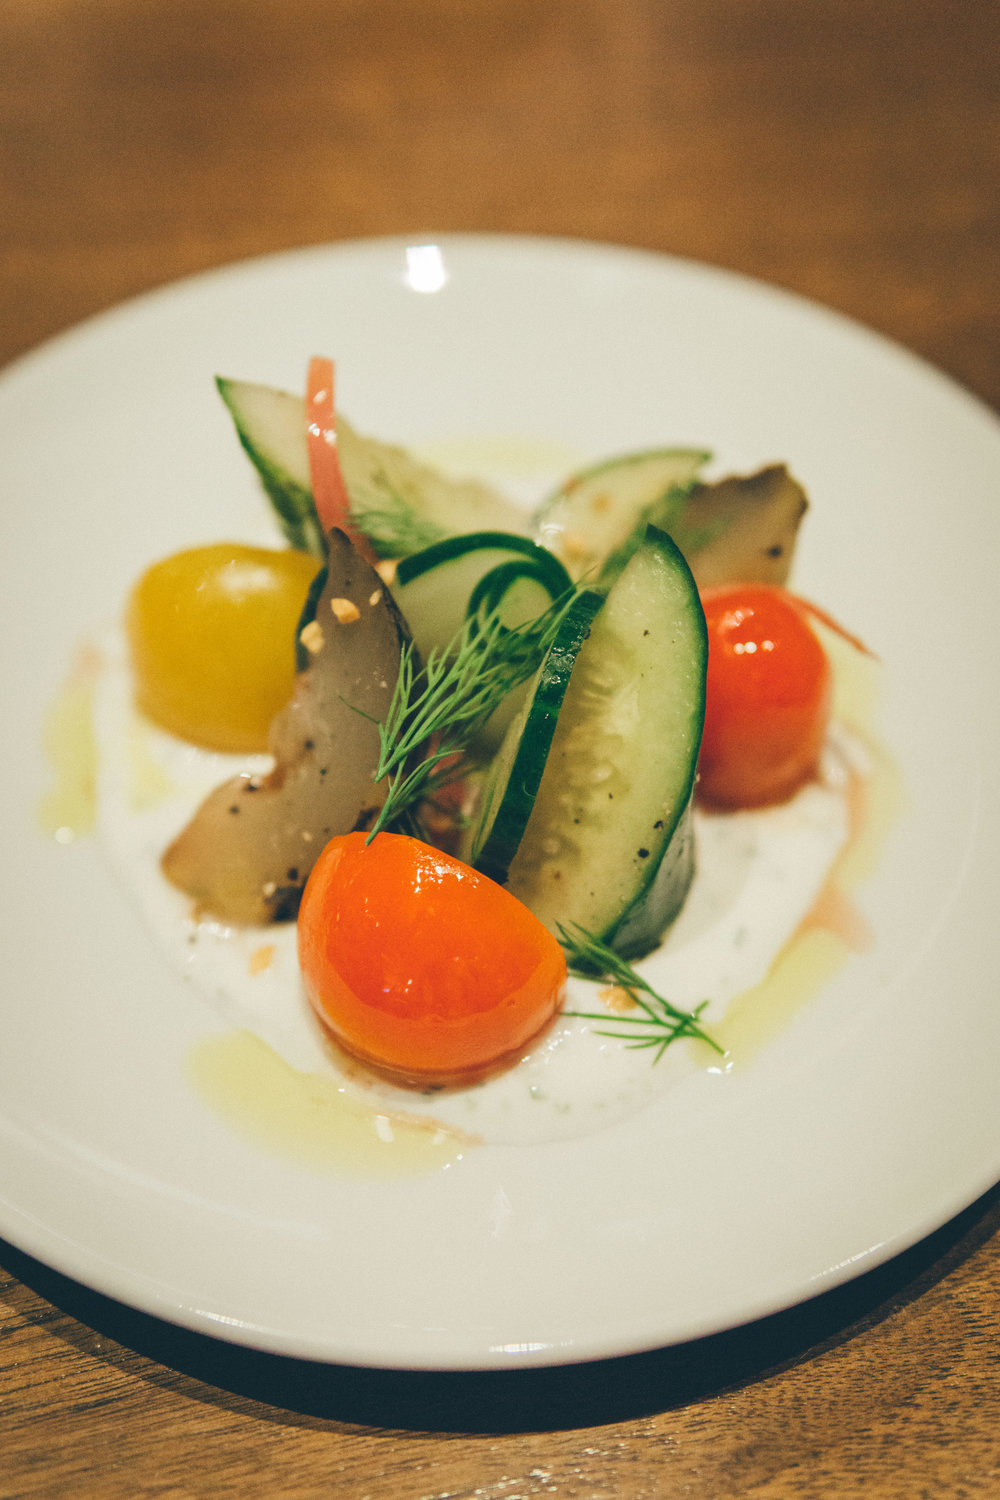 Cucumber & Heirloom Tomato Salad - pickled red onion, herb yogurt, dill, crispy garlic, red wine vinegar